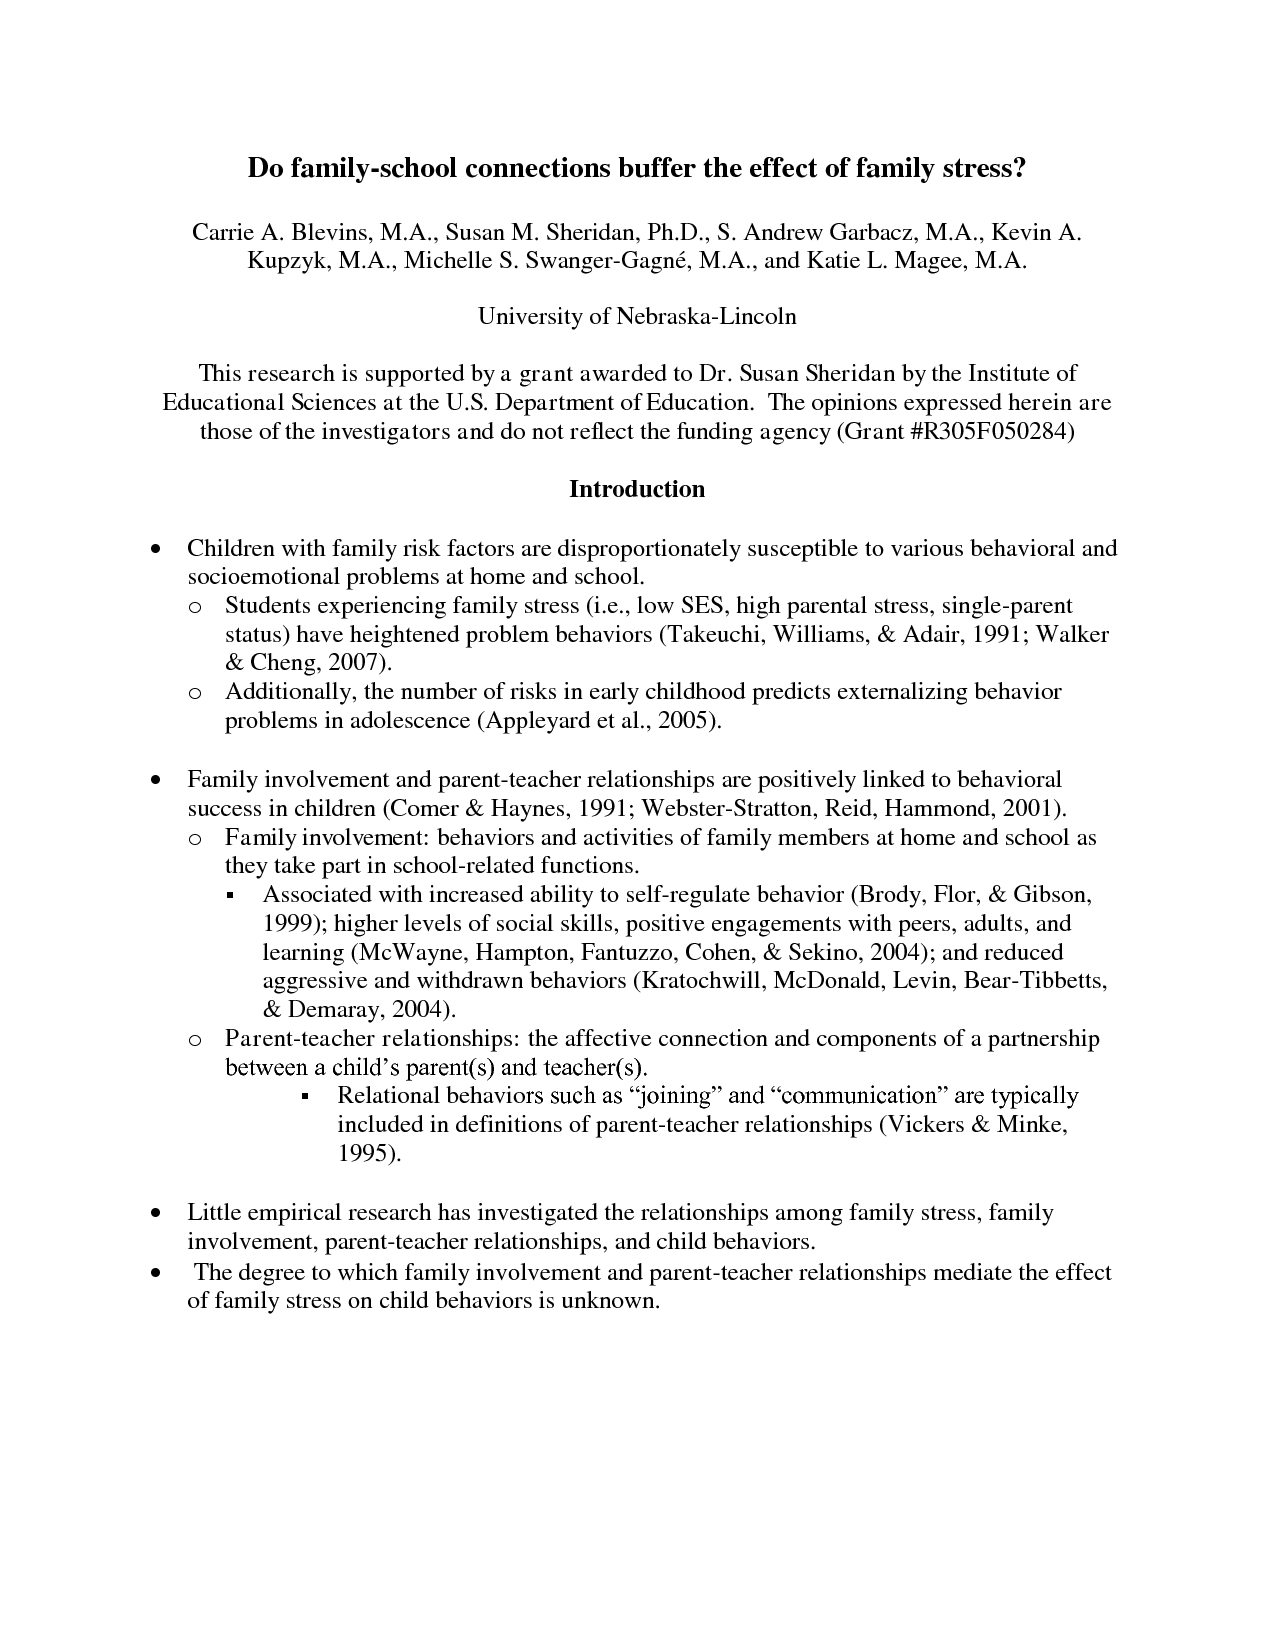 007 Components Of Research Paper Apa Fascinating A In Format Full